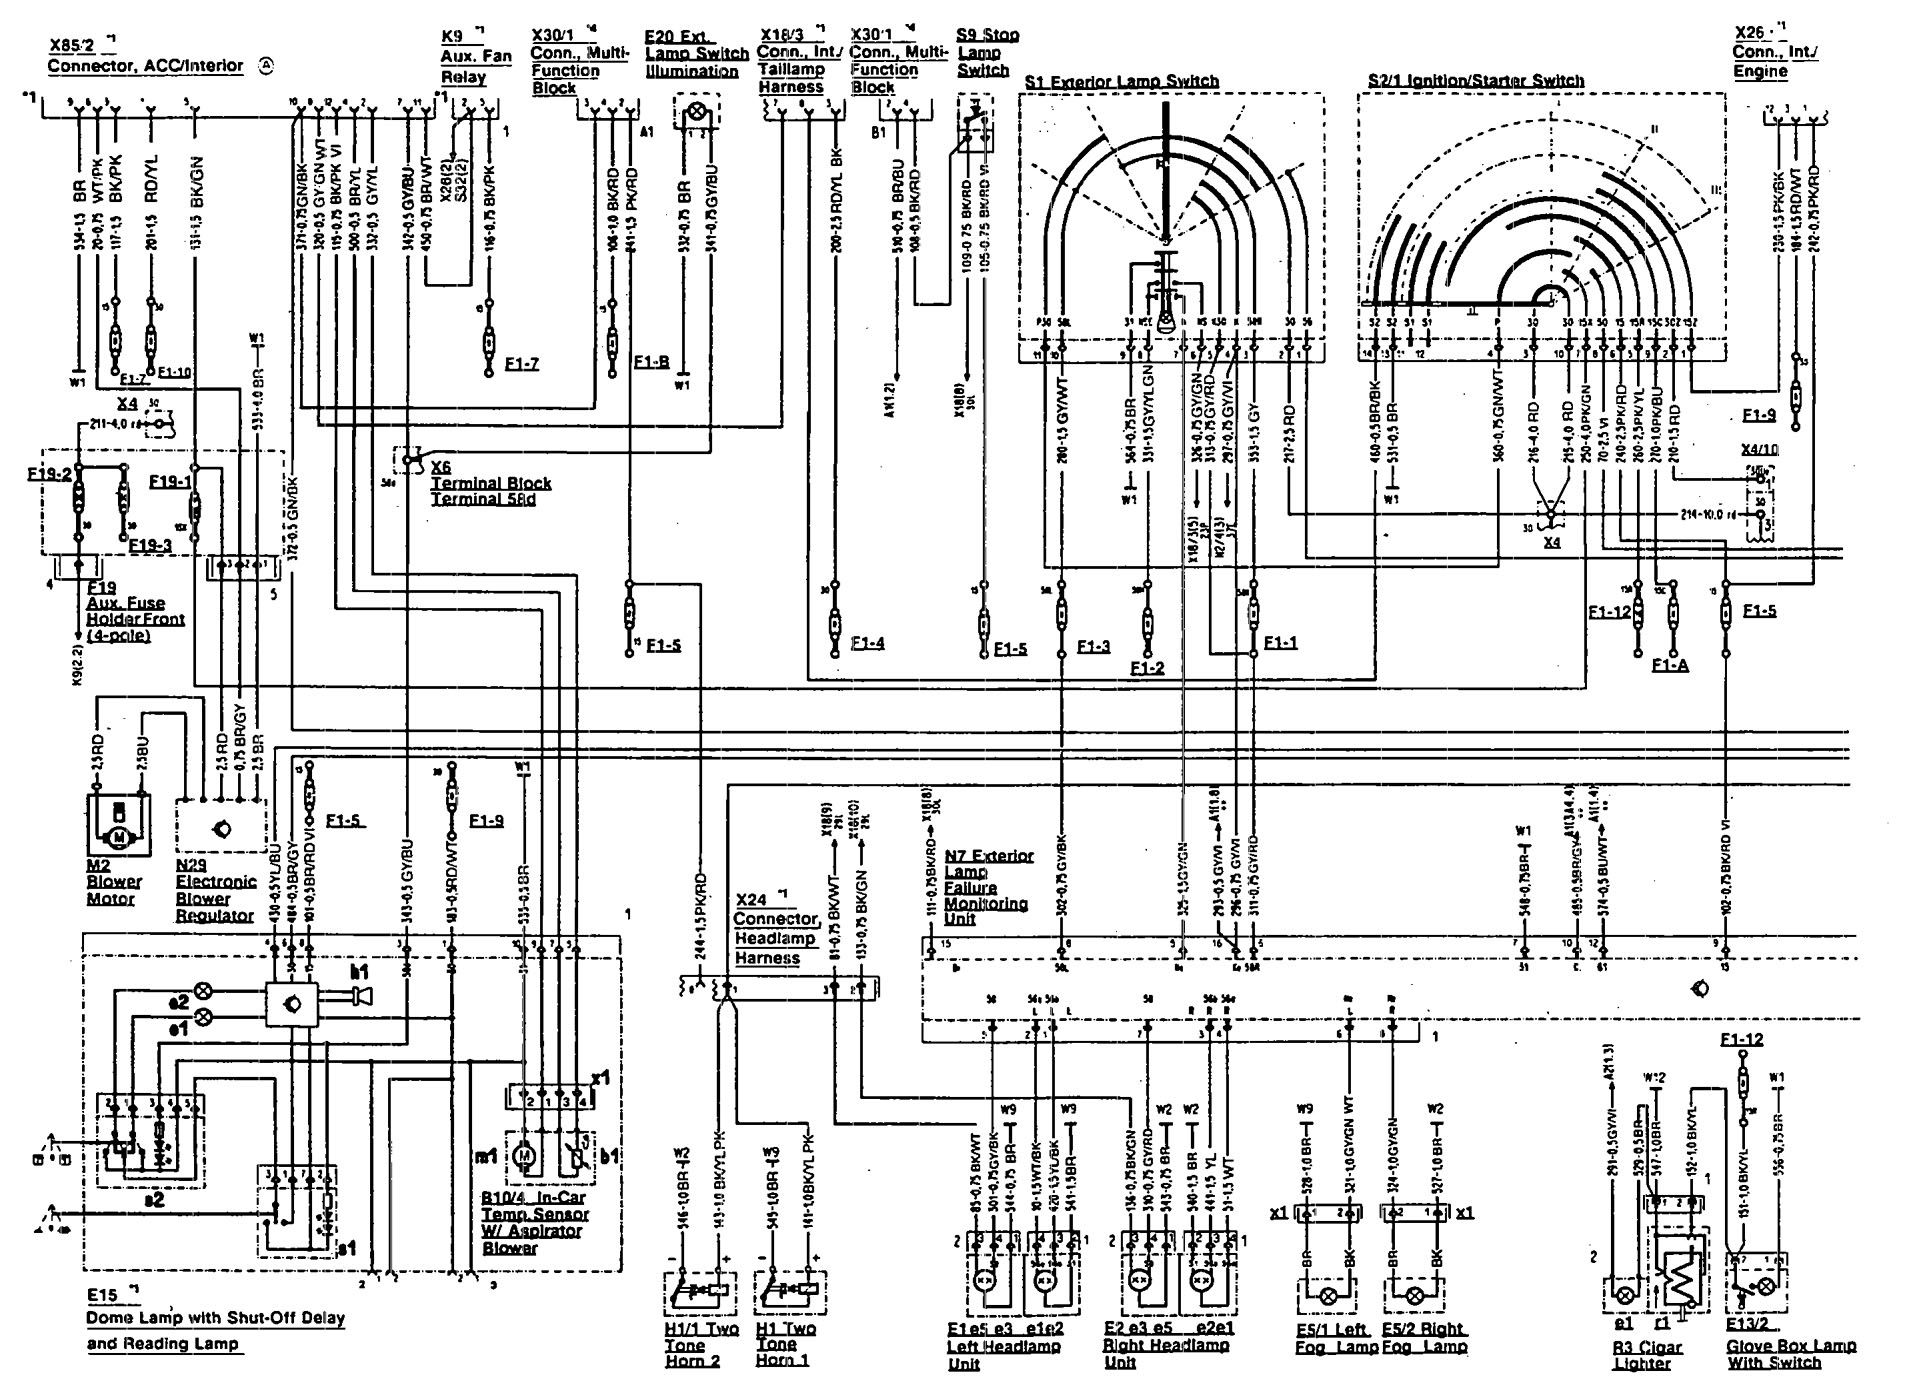 1995 mercedes sl500 wiring diagram gibson les paul 50 s benz 300sl 1990 1992 diagrams